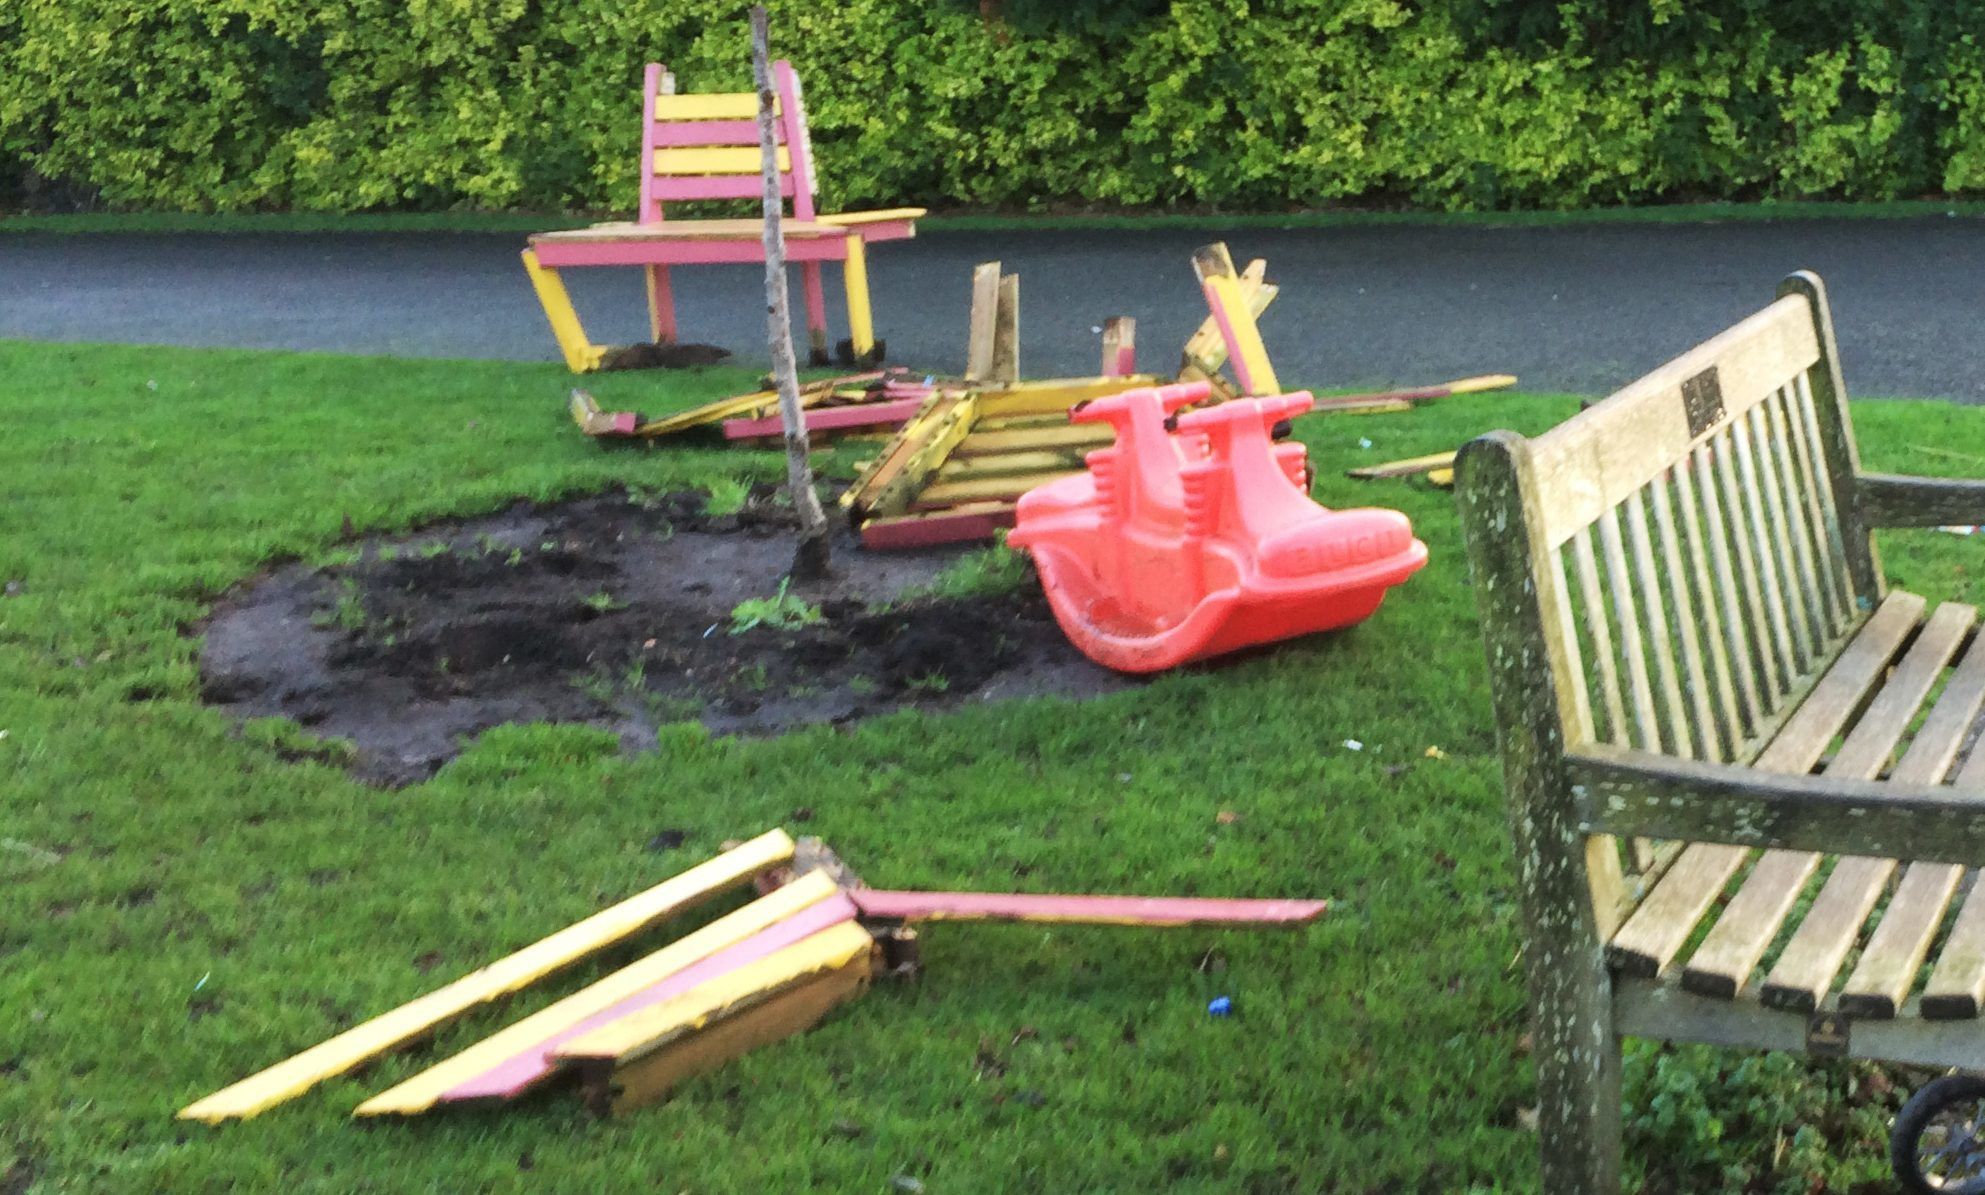 Vandals destroyed a bench, ripped out plants and left only a stalk of the tree in the garden.